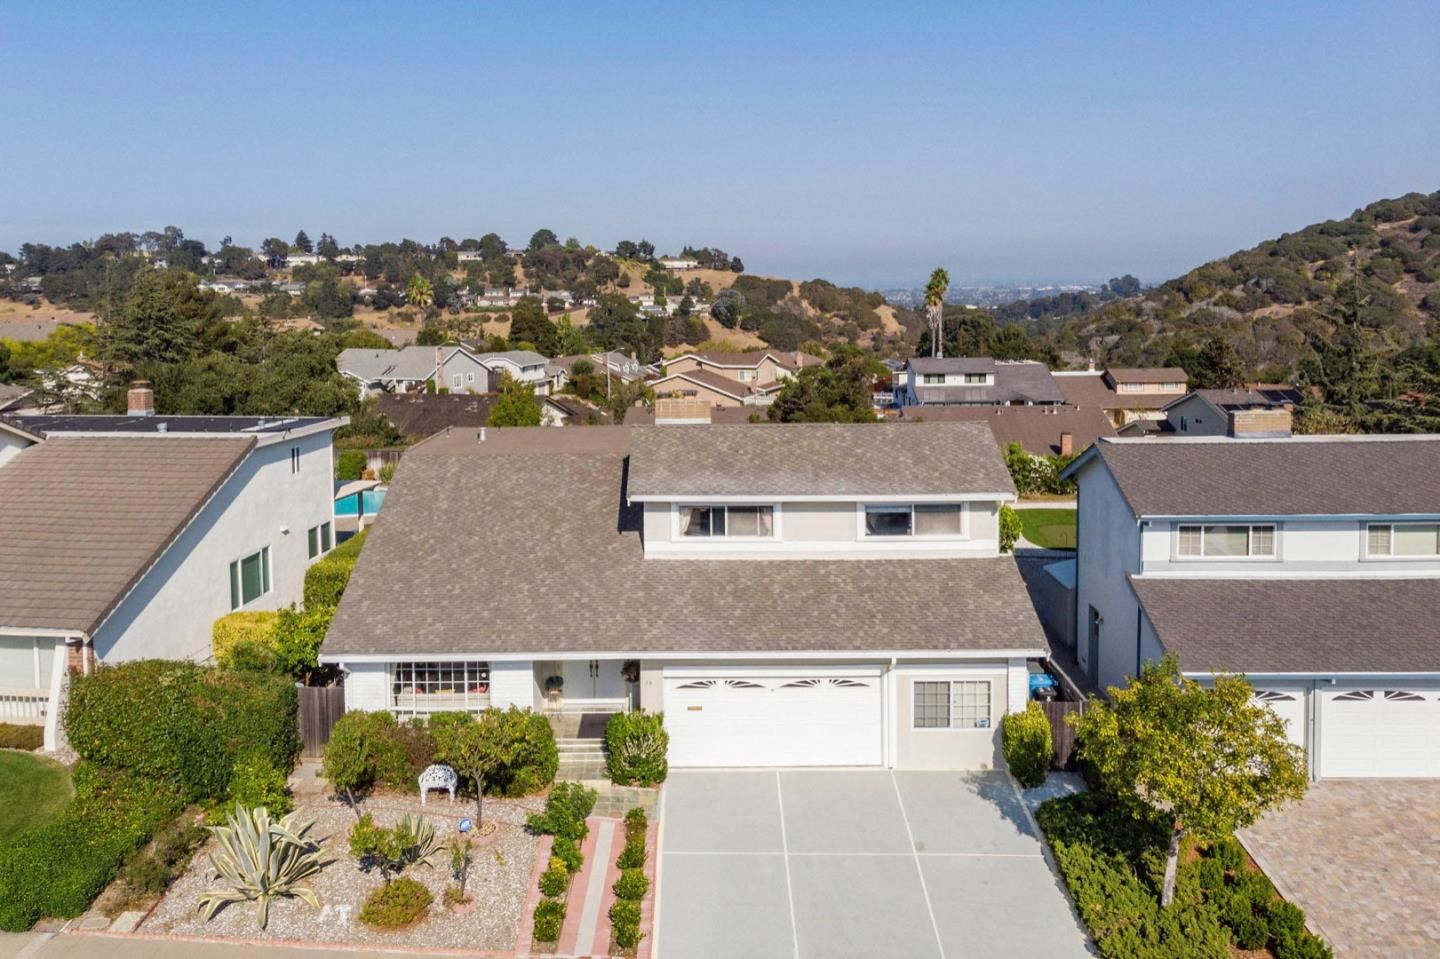 Photo for 19 Condon CT, SAN MATEO, CA 94403 (MLS # ML81814900)